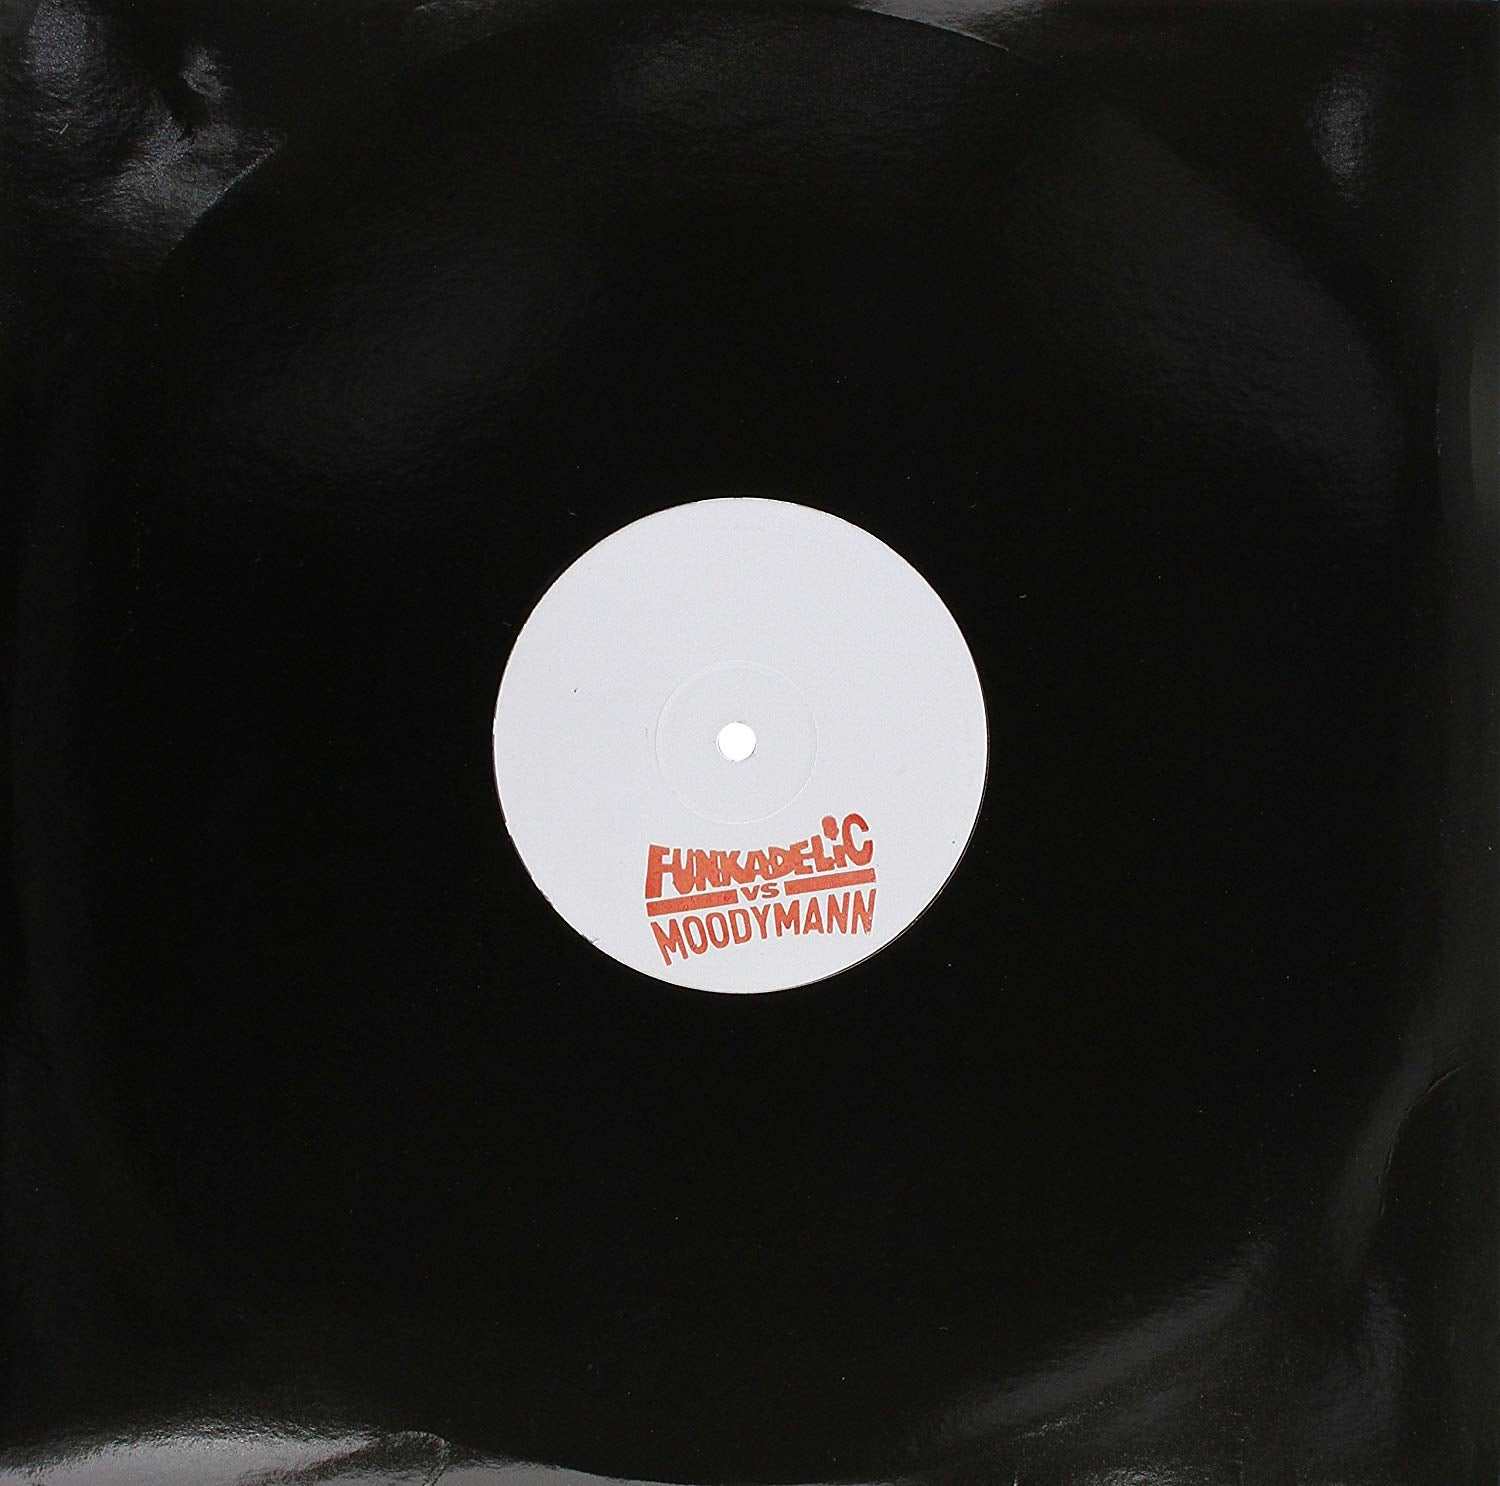 Funkadelic vs Moodymann - Cosmic Slop (Moodymann mix) / Let's Make It Last (Kenny Dixon Jr edit) [12''] (limited white label import)